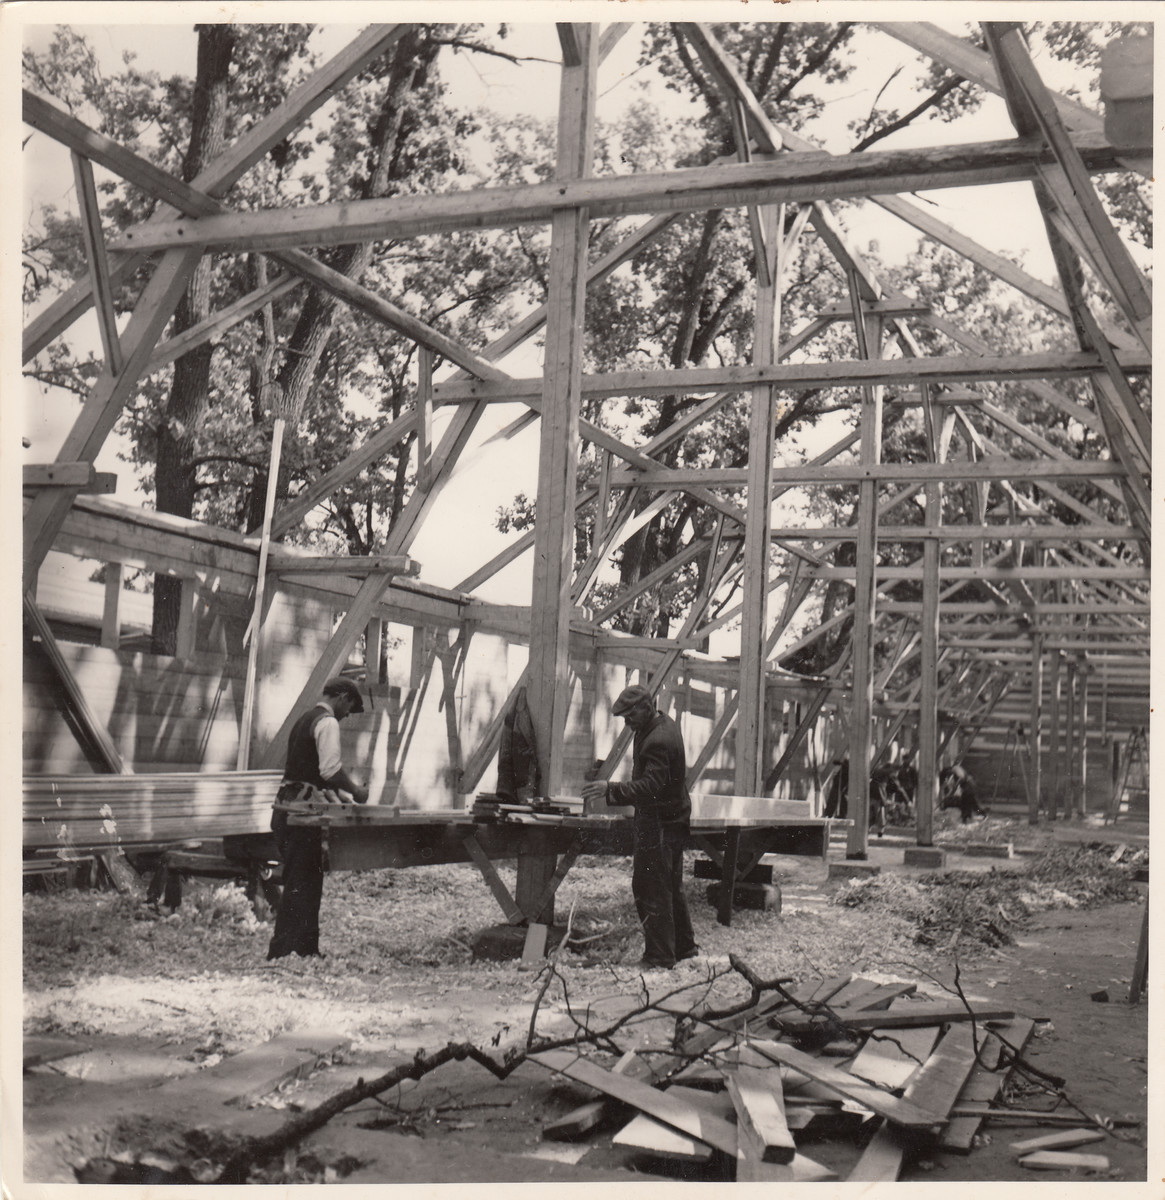 Members of a Jewish labor battalion work in a partially completed structure in Hajduhadhaz.